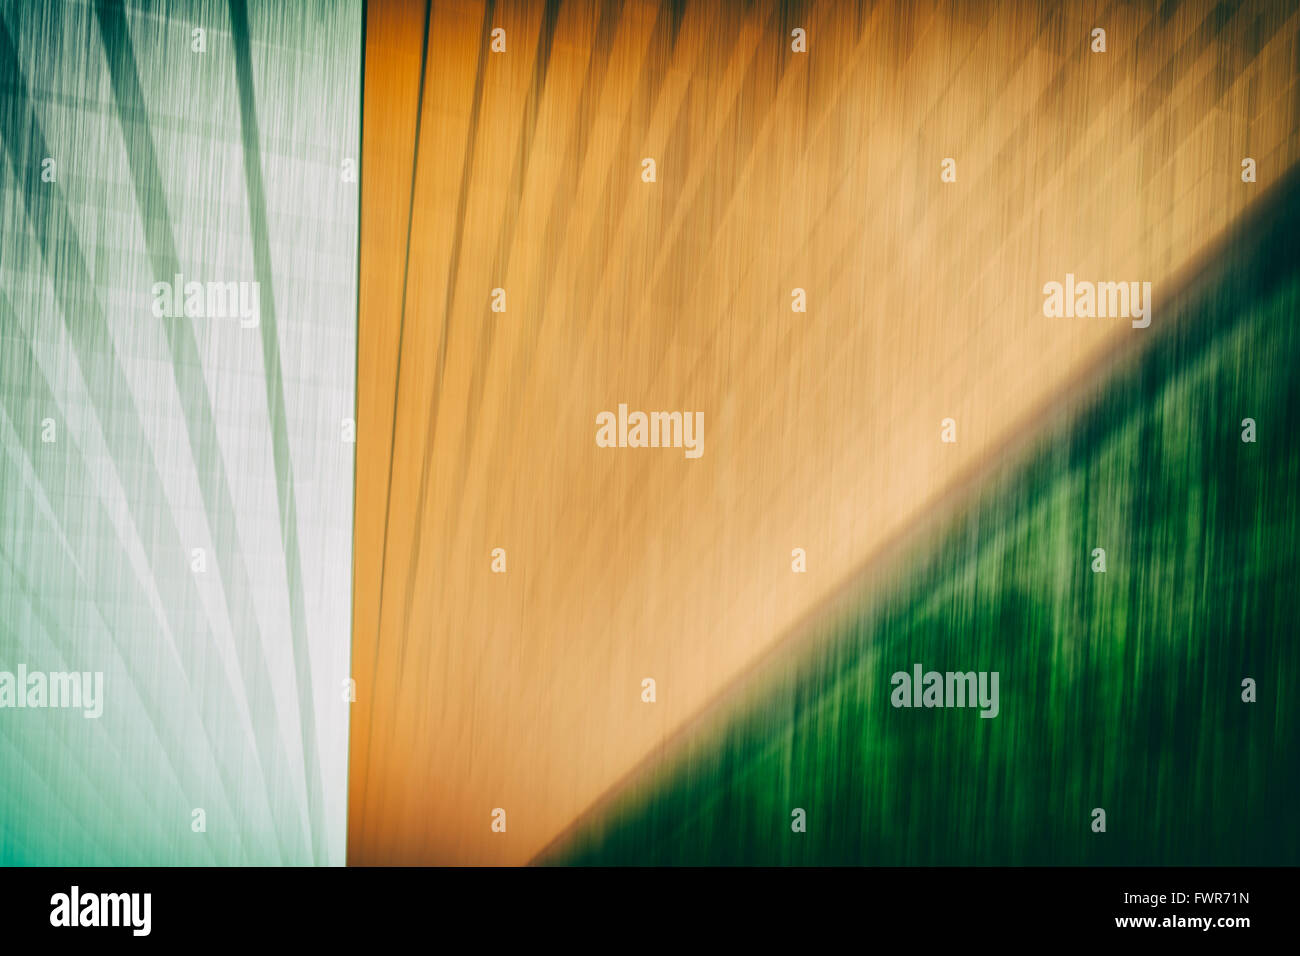 Motion blurred abstract grunge background or texture with copy space. - Stock Image